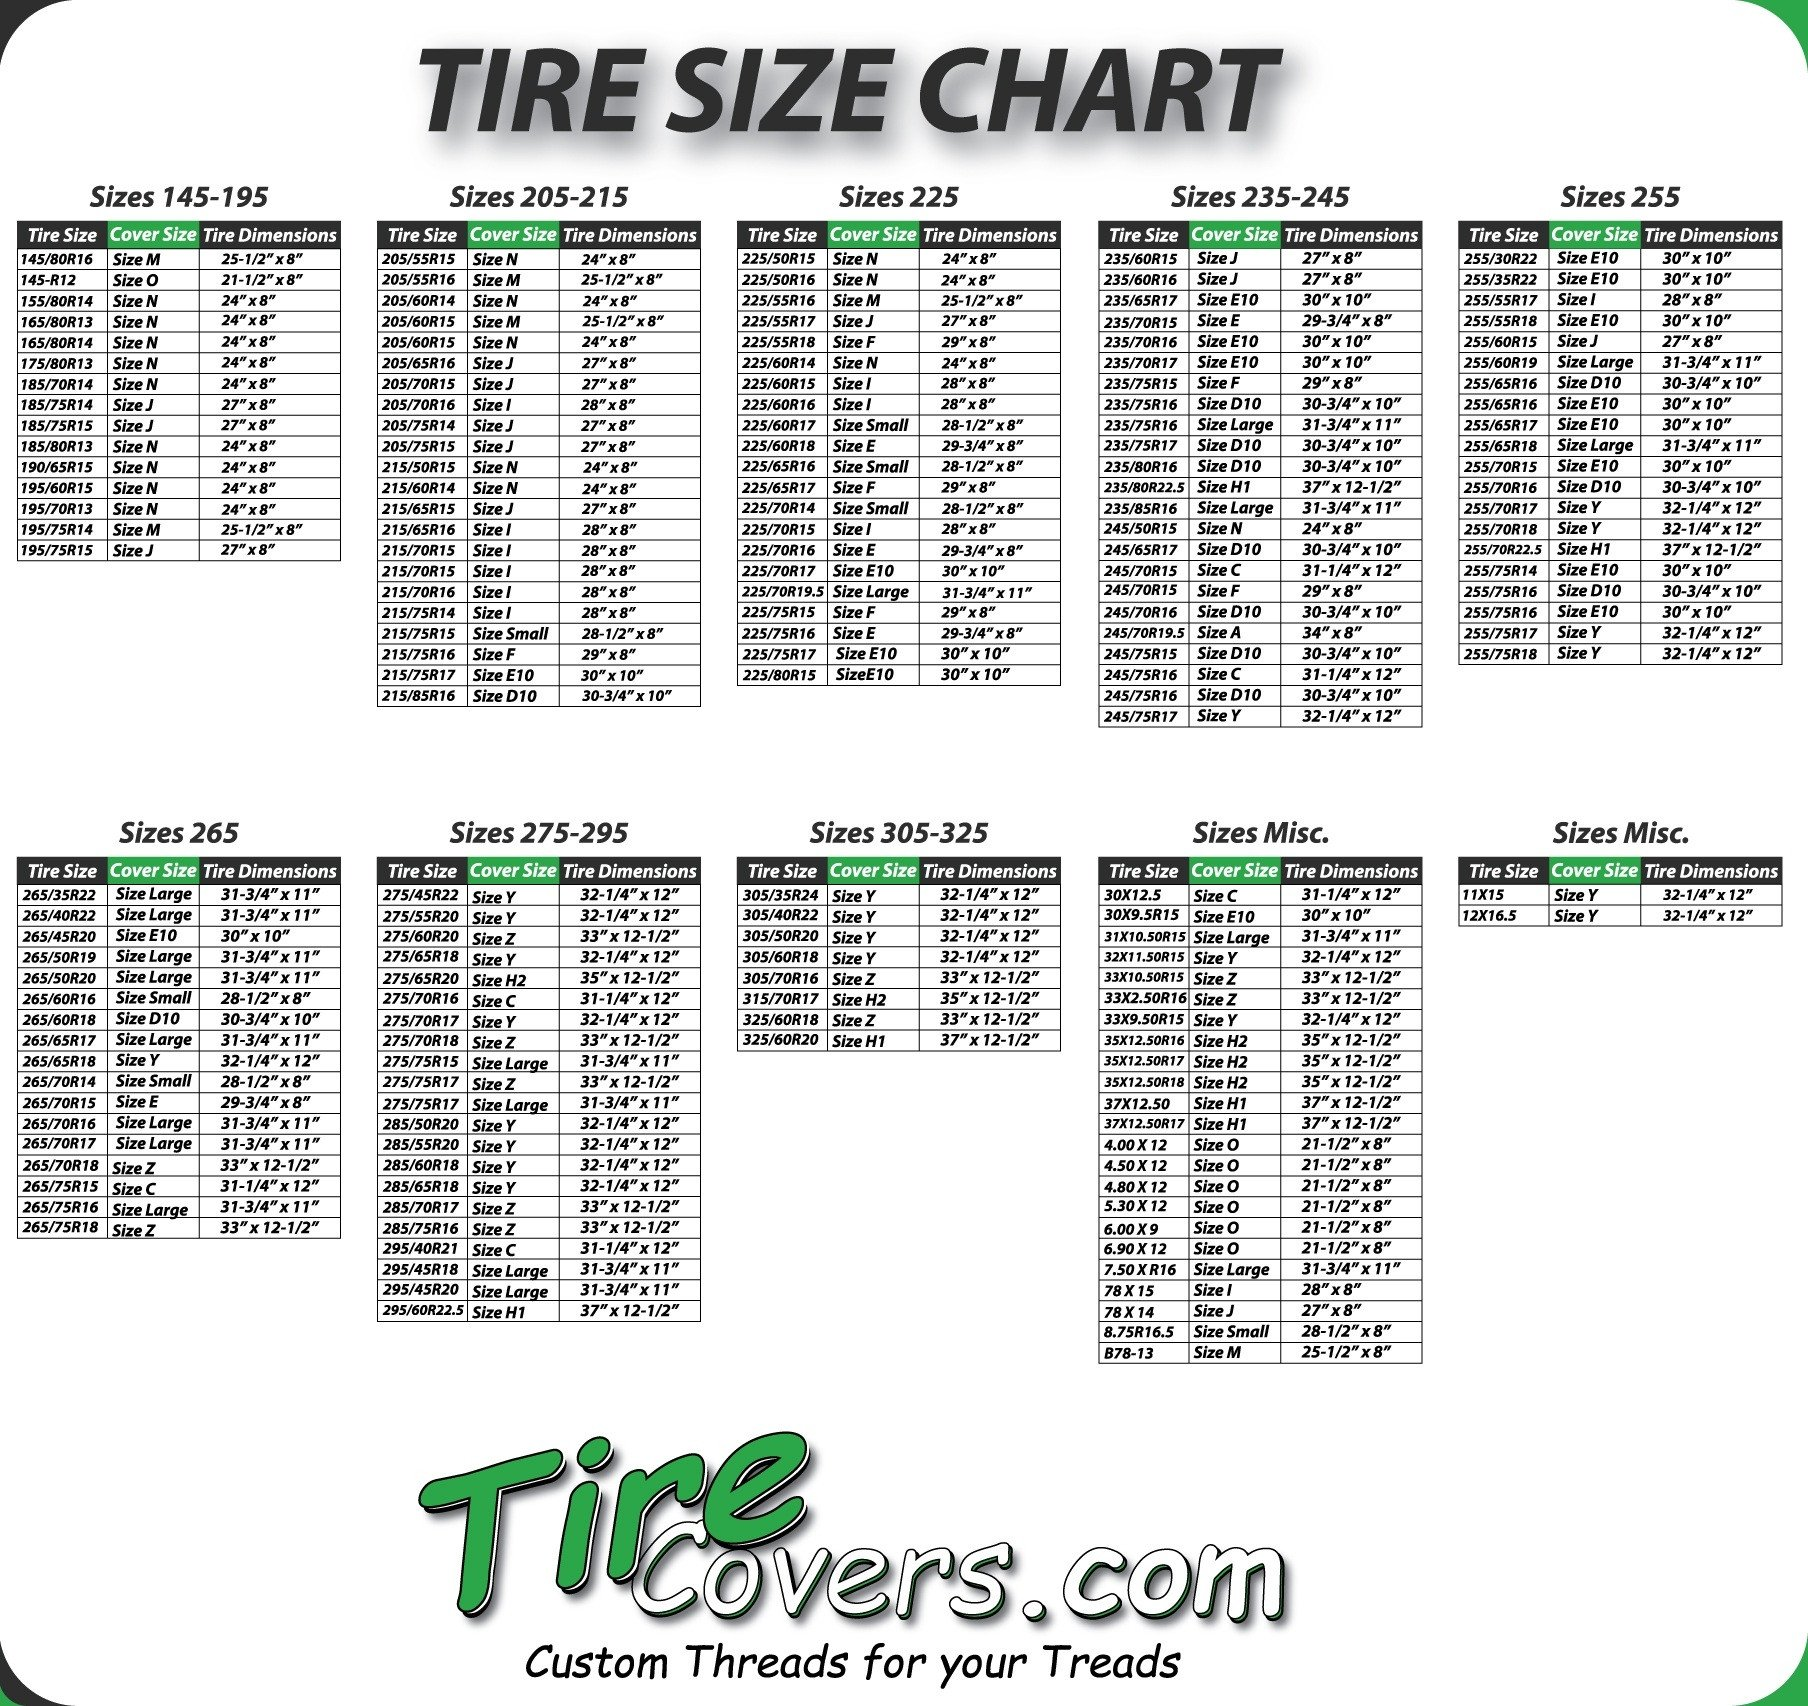 Tire Size Comparison Chart Template Tires Size Chart